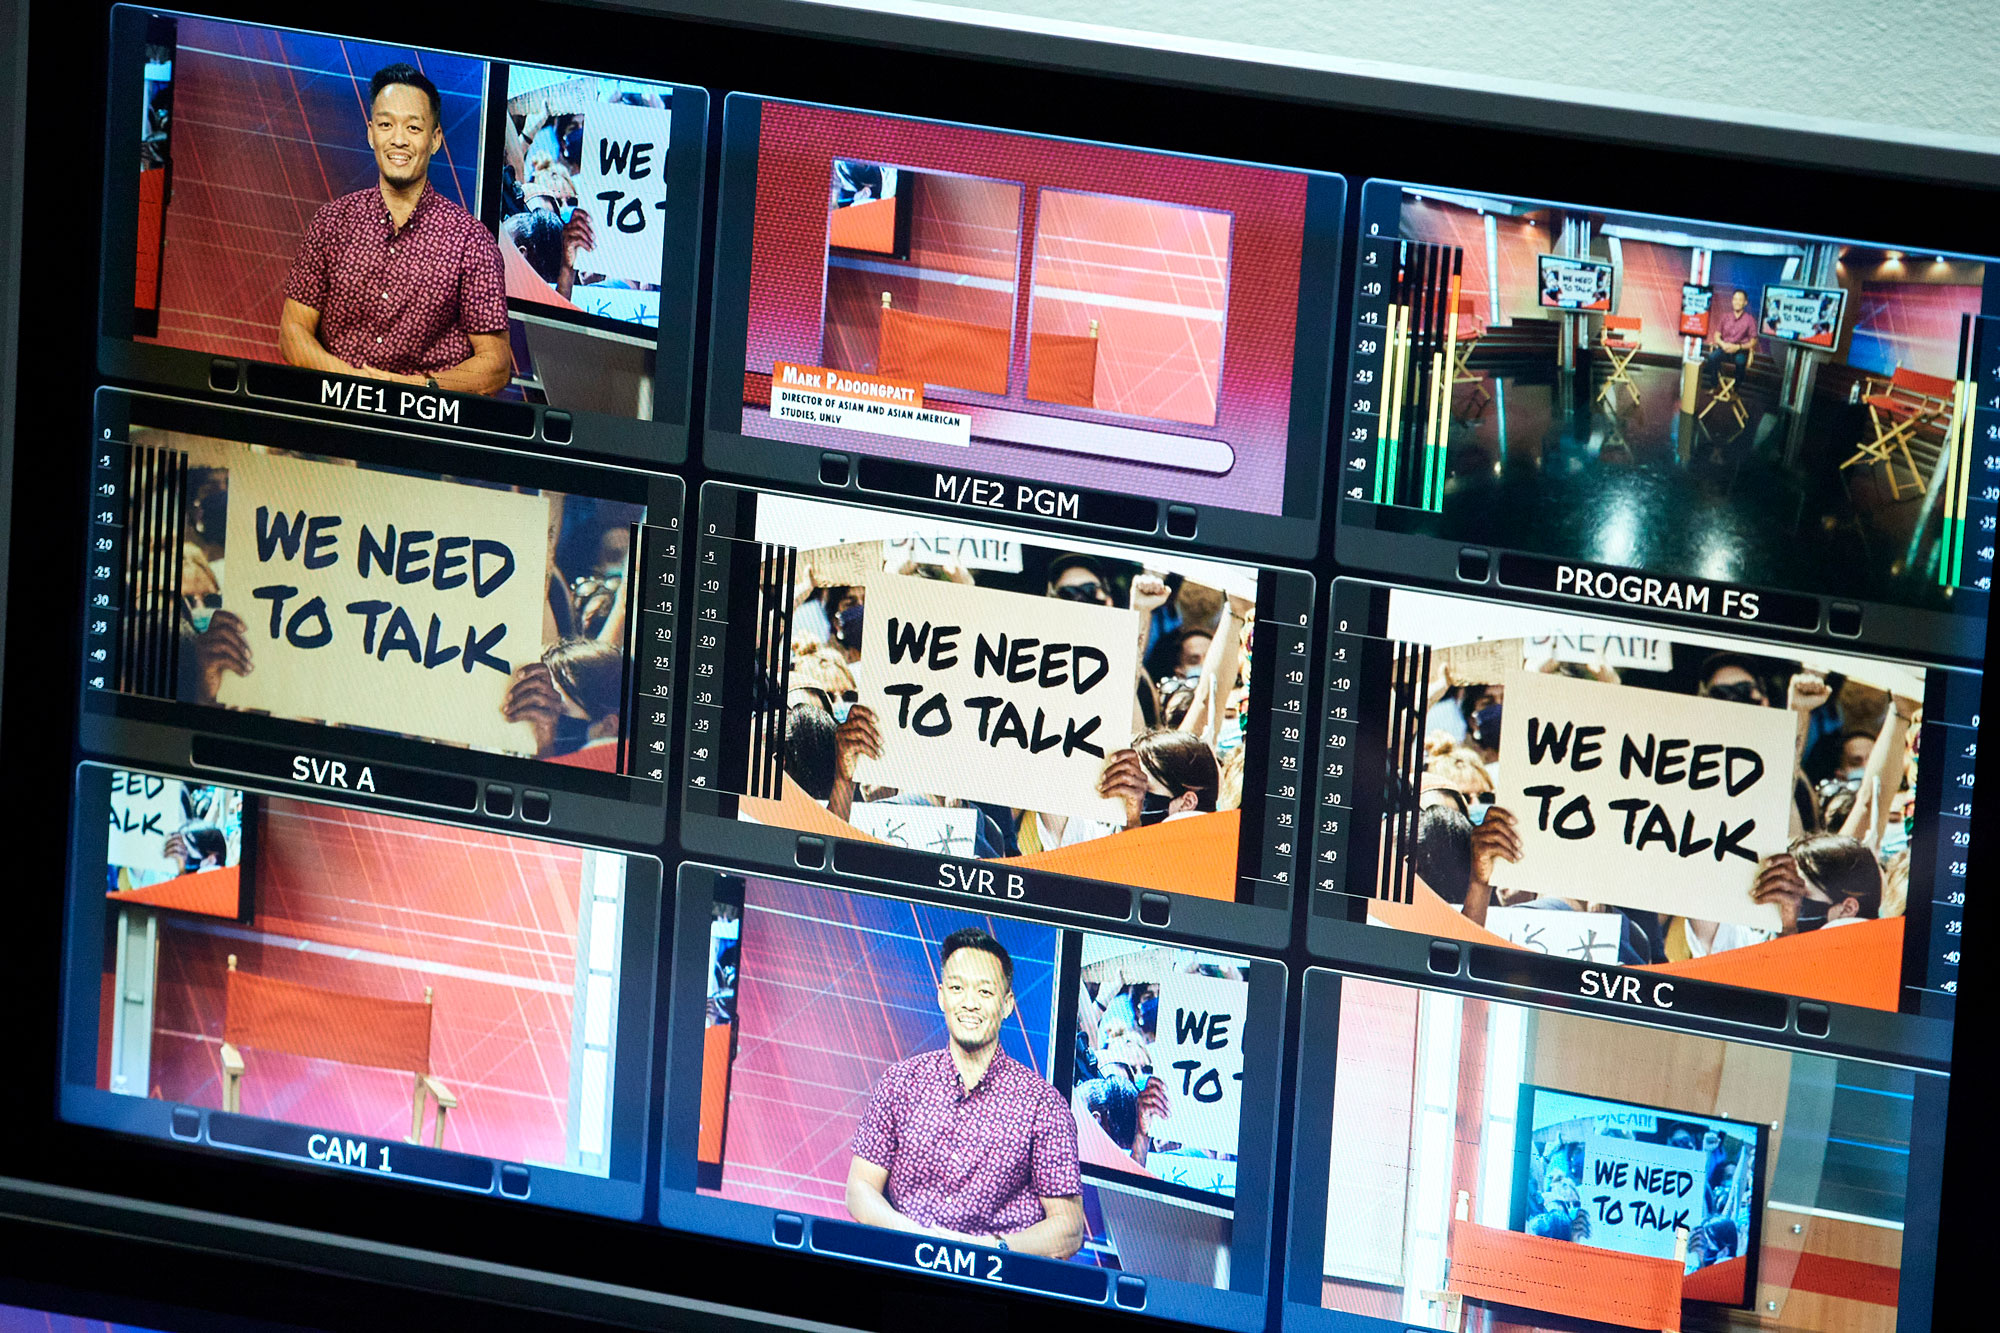 Six video panels with images from a panel discussion